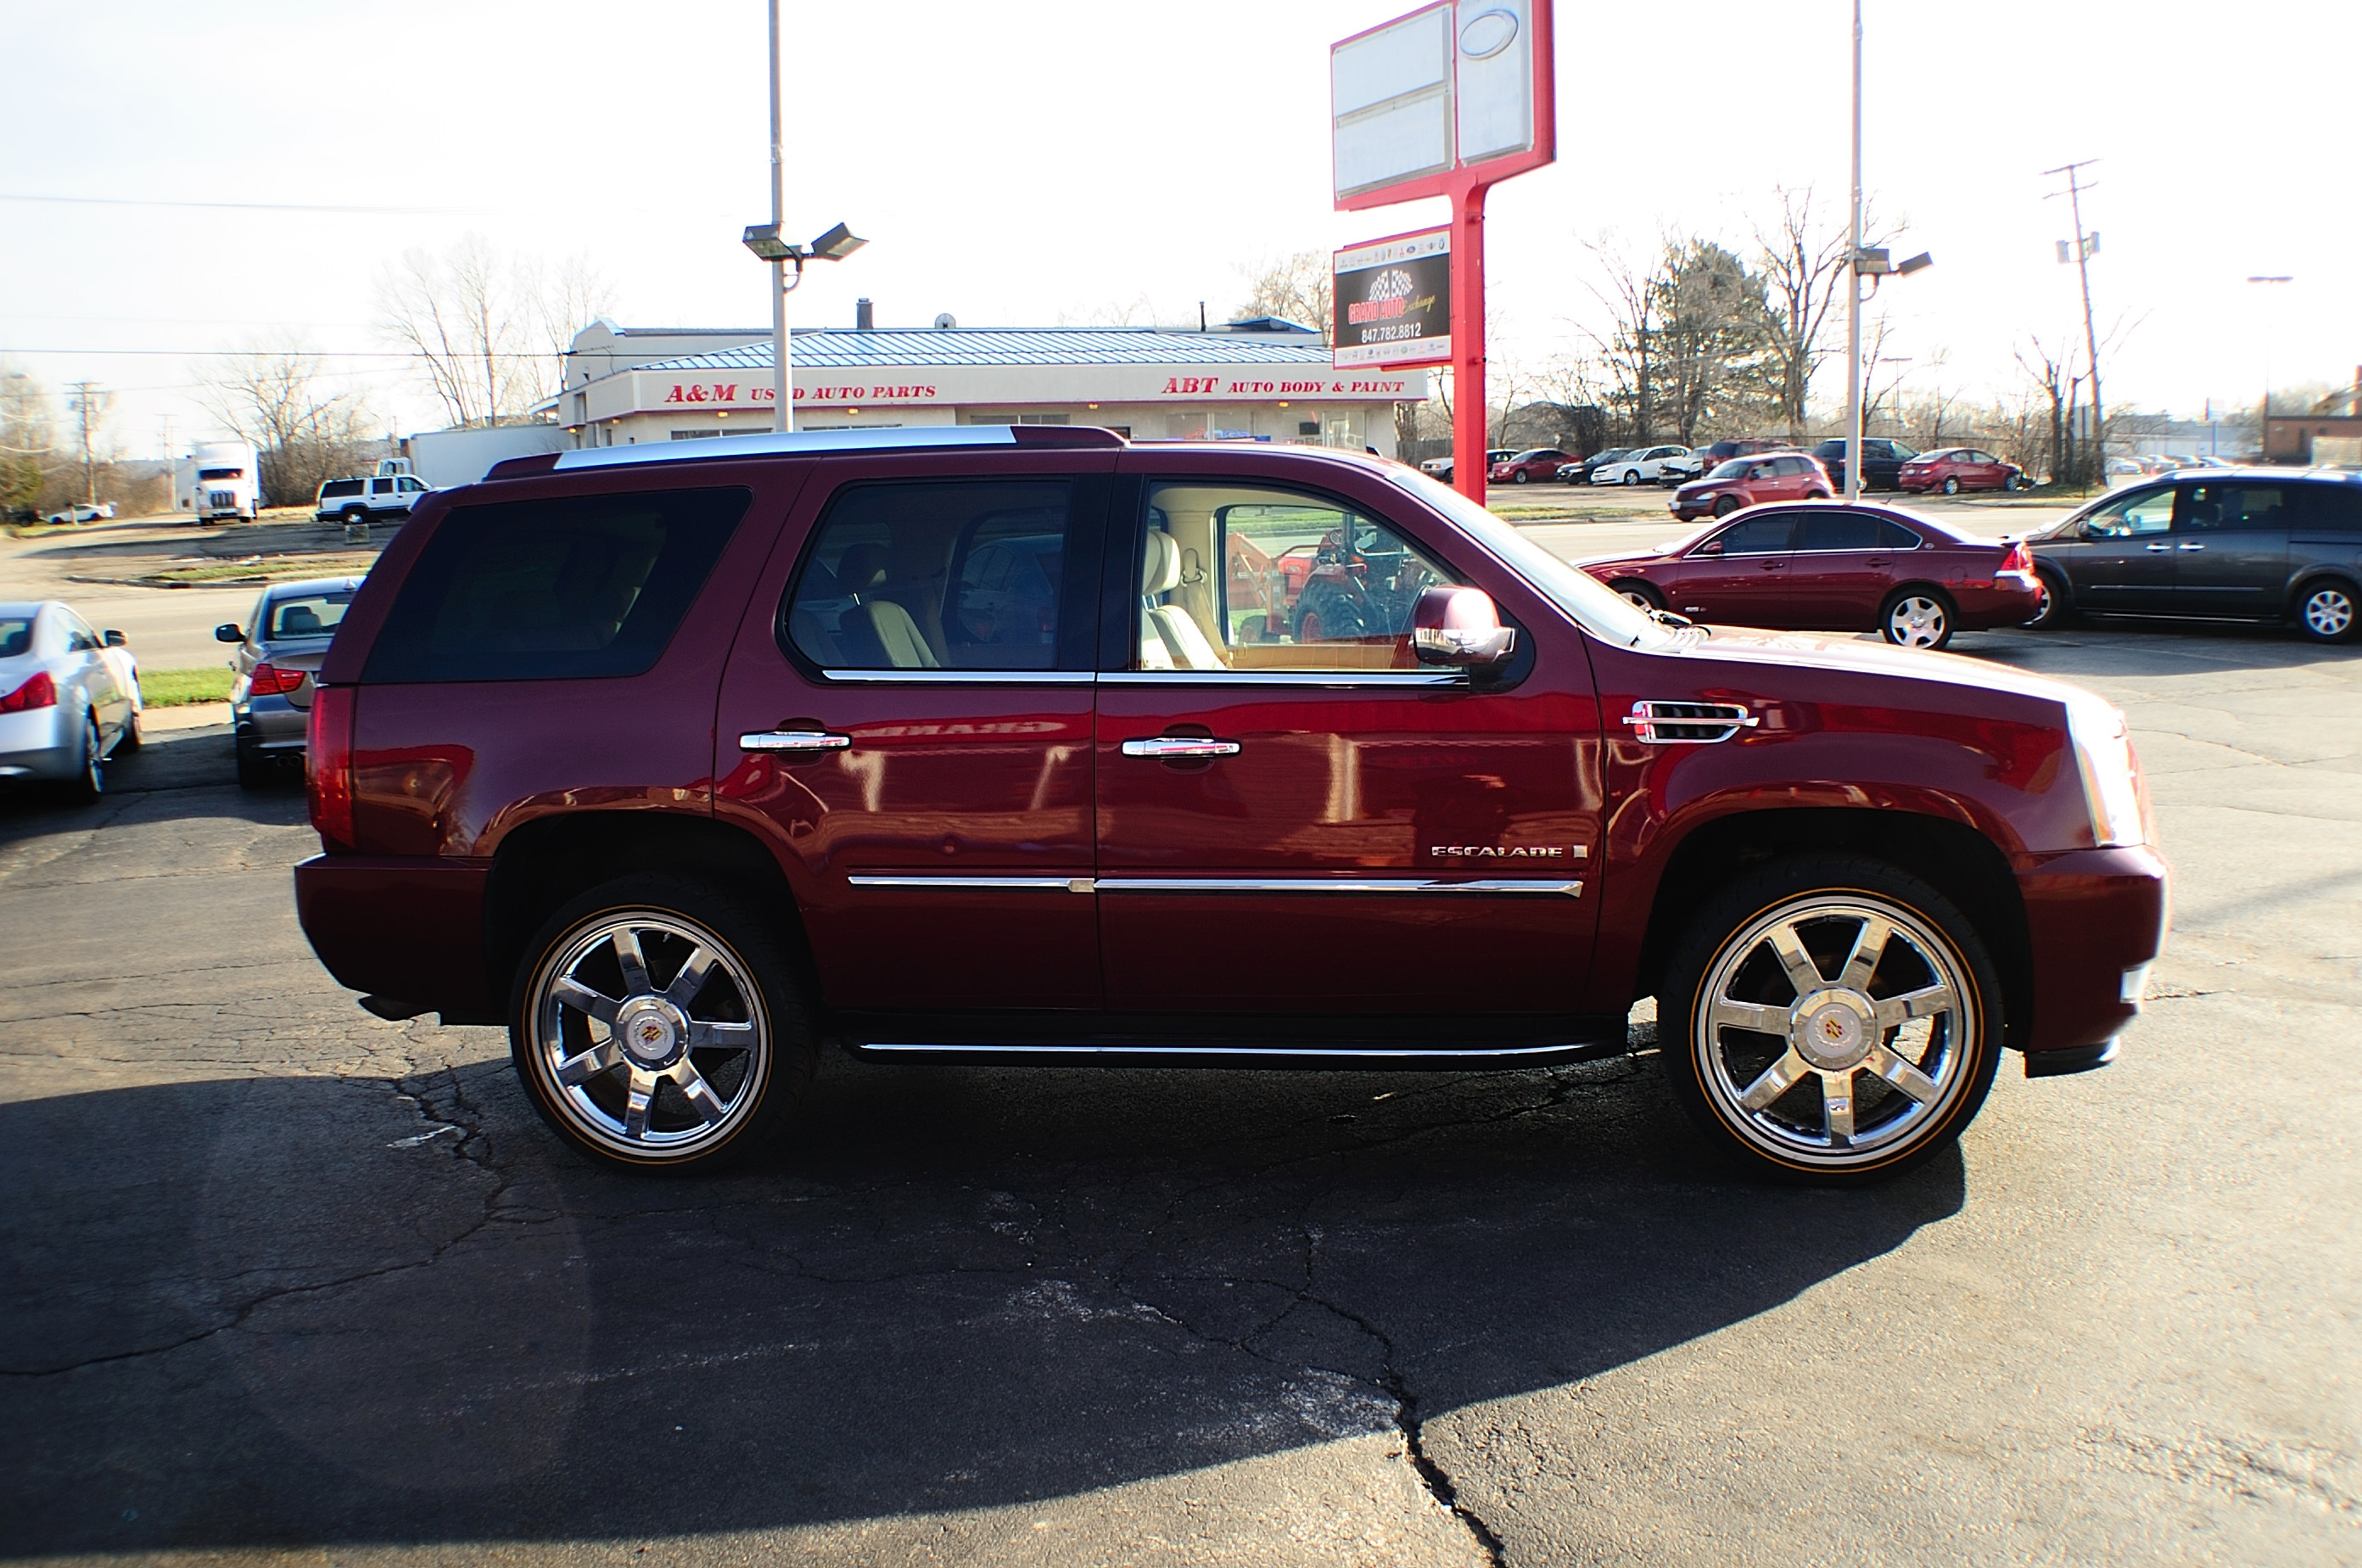 2007 Cadillac Escalade Red 4x4 Used SUV Sale Bannockburn Barrington Beach Park